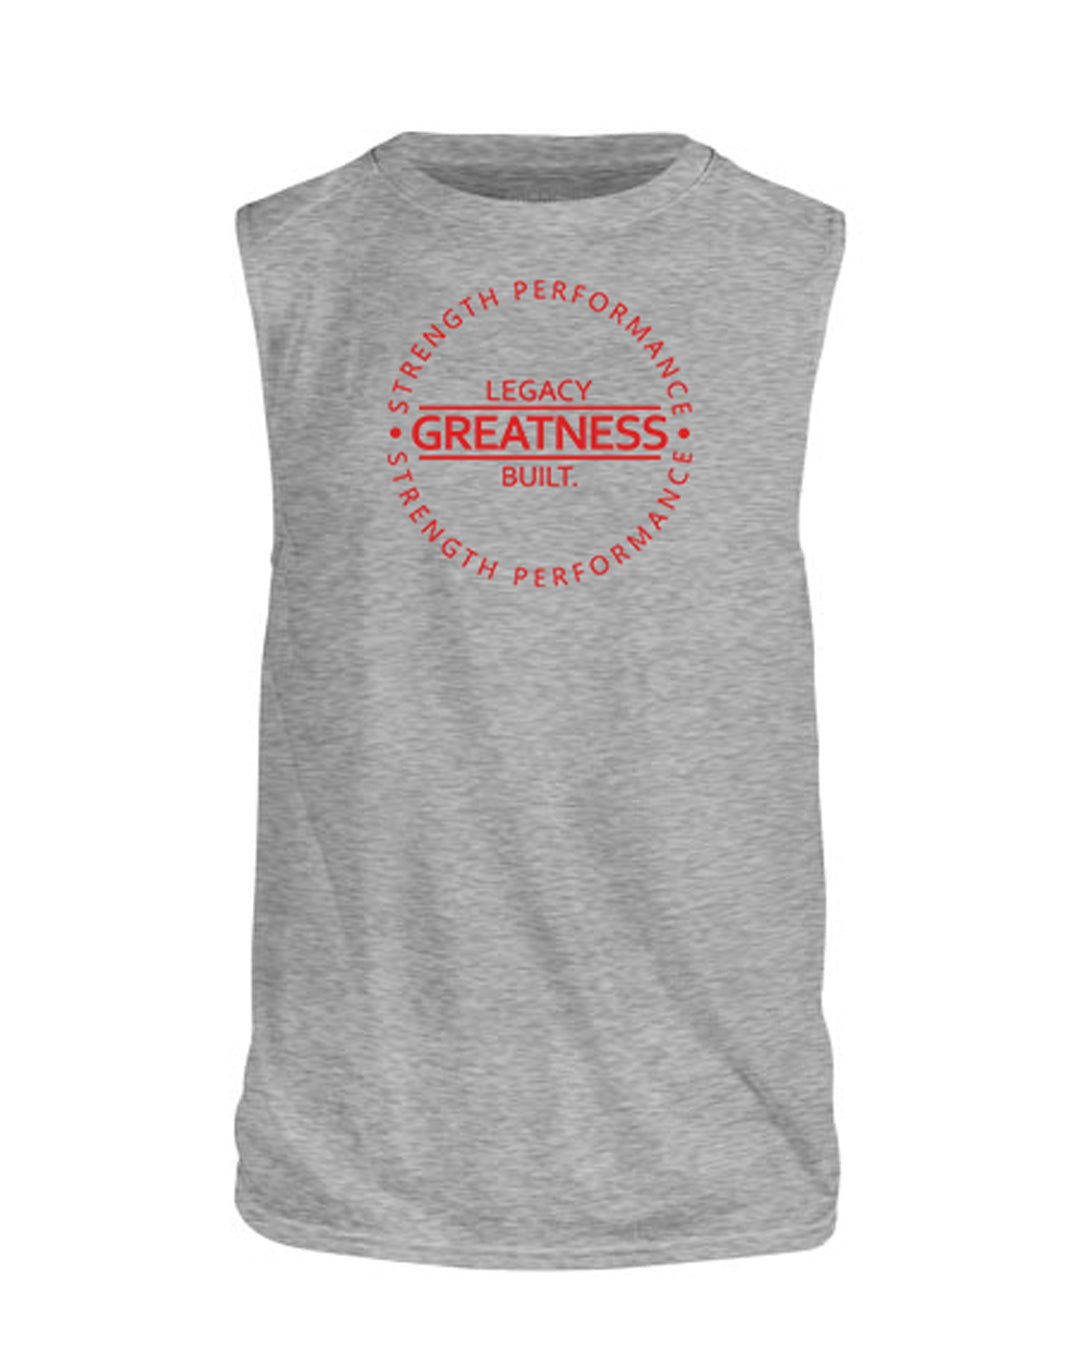 GREATNESS SLEEVELESS TANK - HEATHER GREY